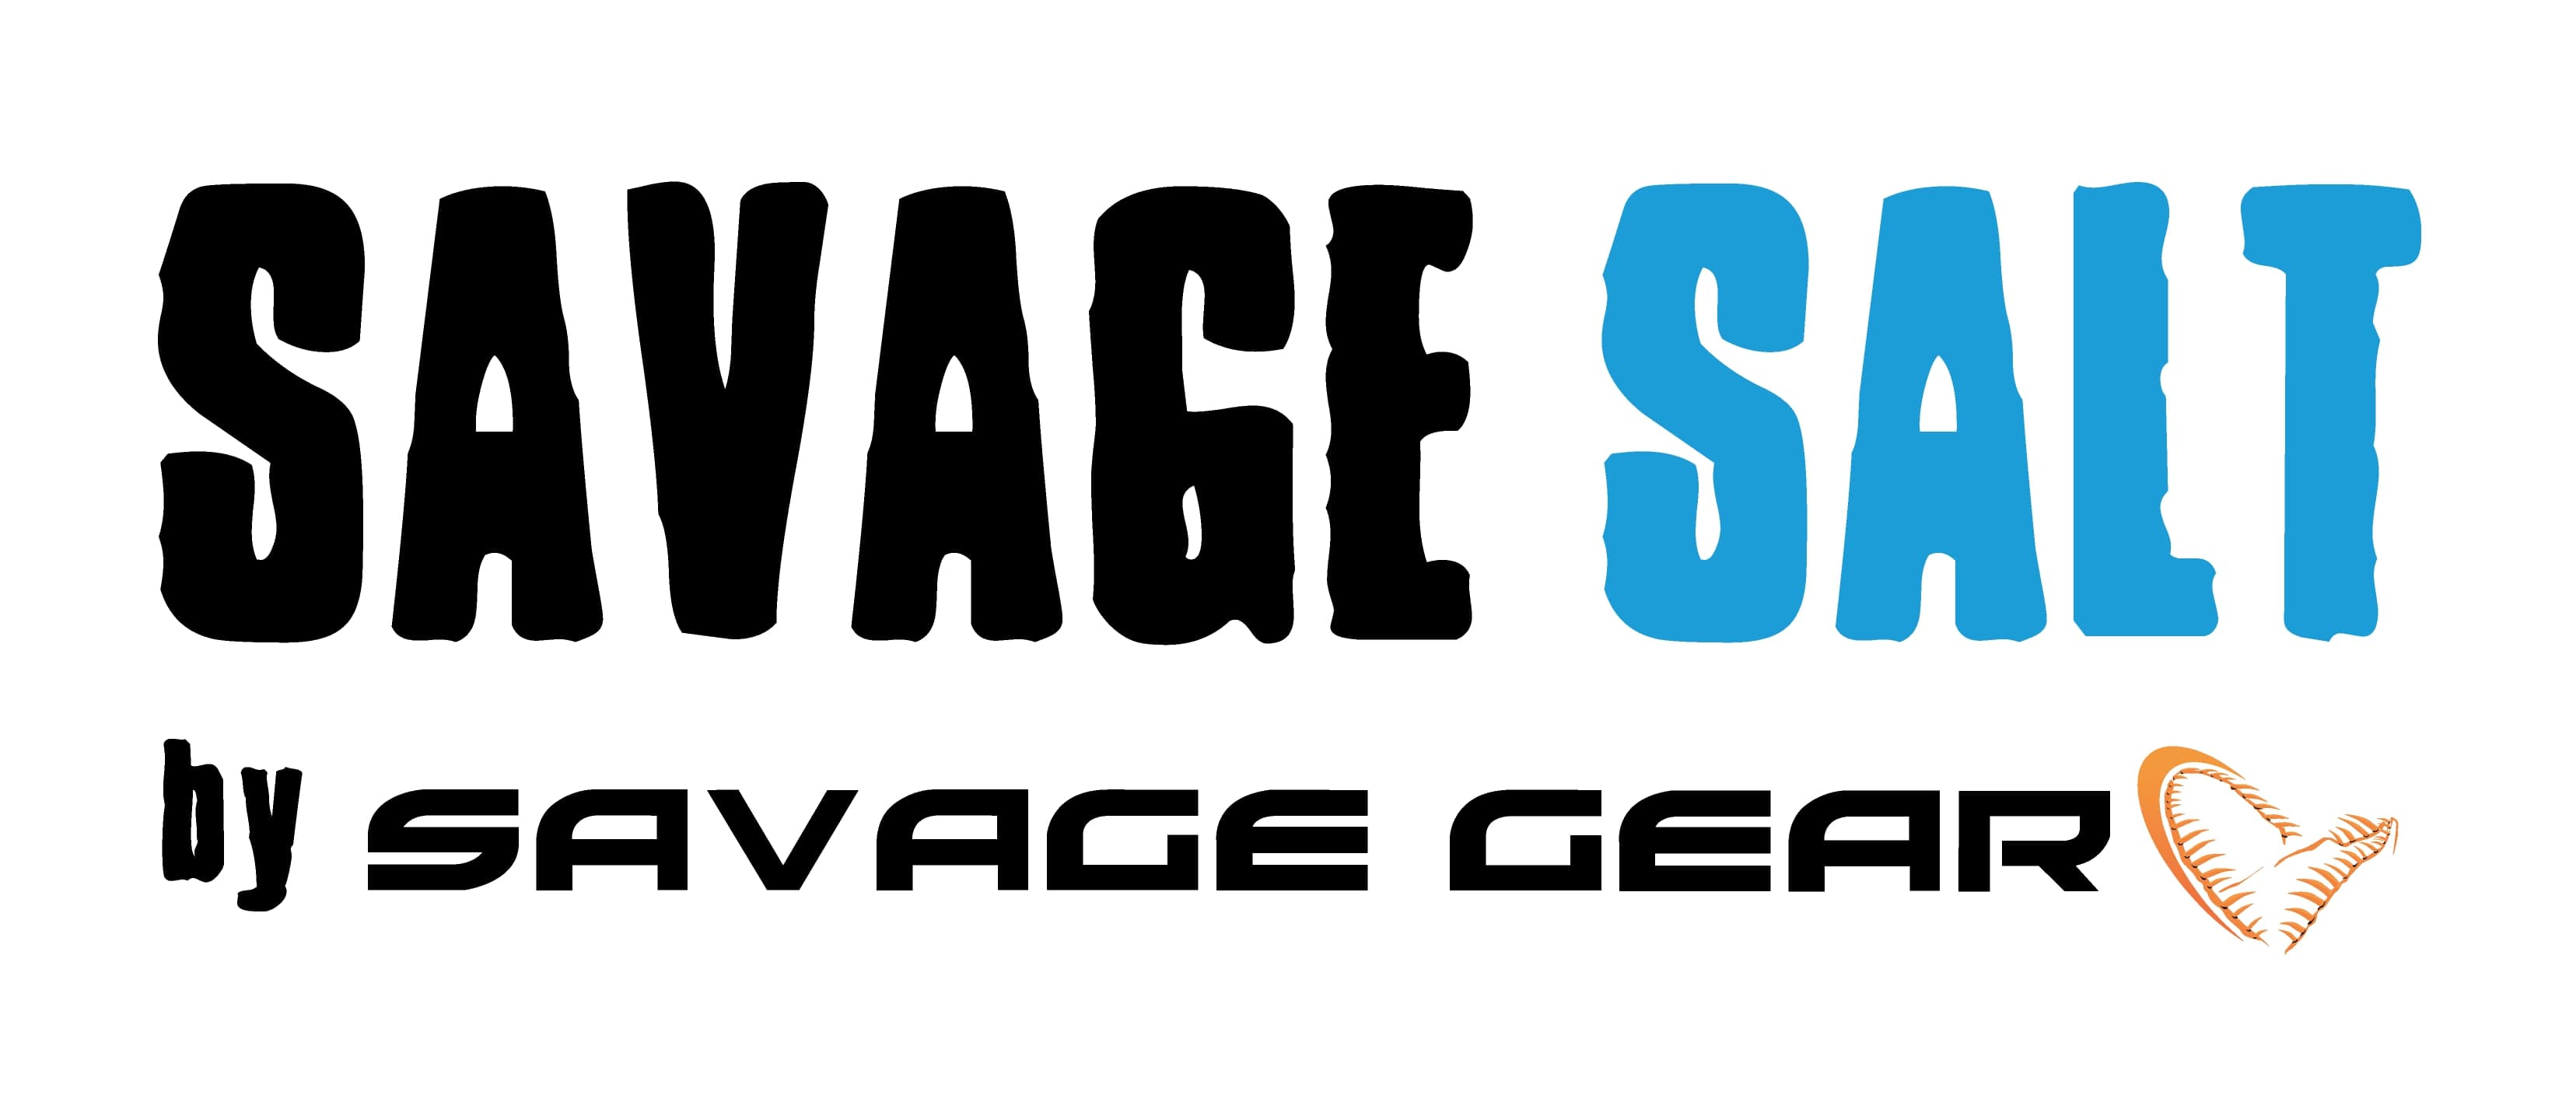 savage-gear-salt-logo-logo.jpg